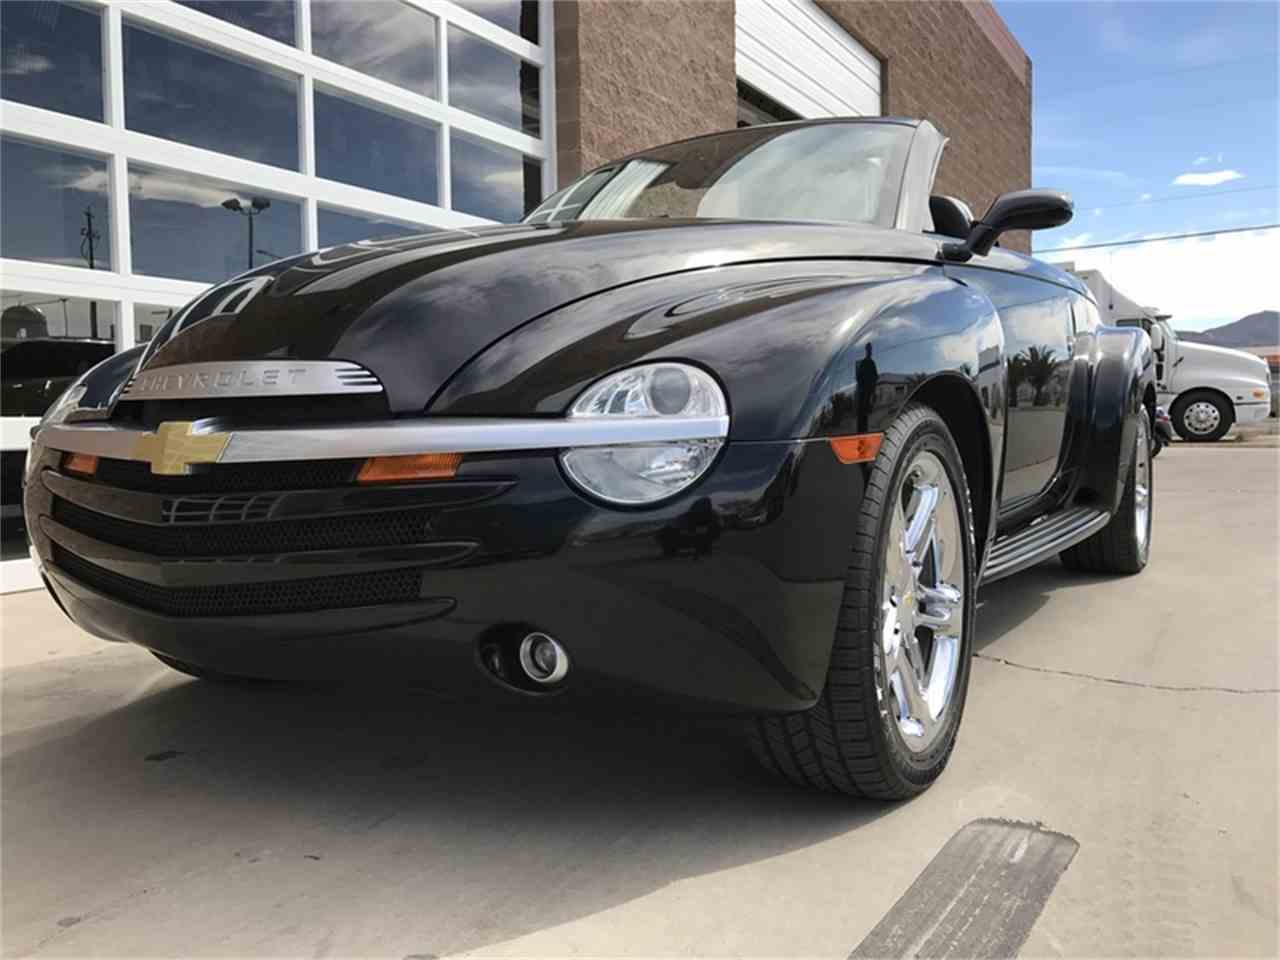 All Chevy 2006 chevrolet ssr for sale : 2006 Chevrolet SSR for Sale | ClassicCars.com | CC-992532